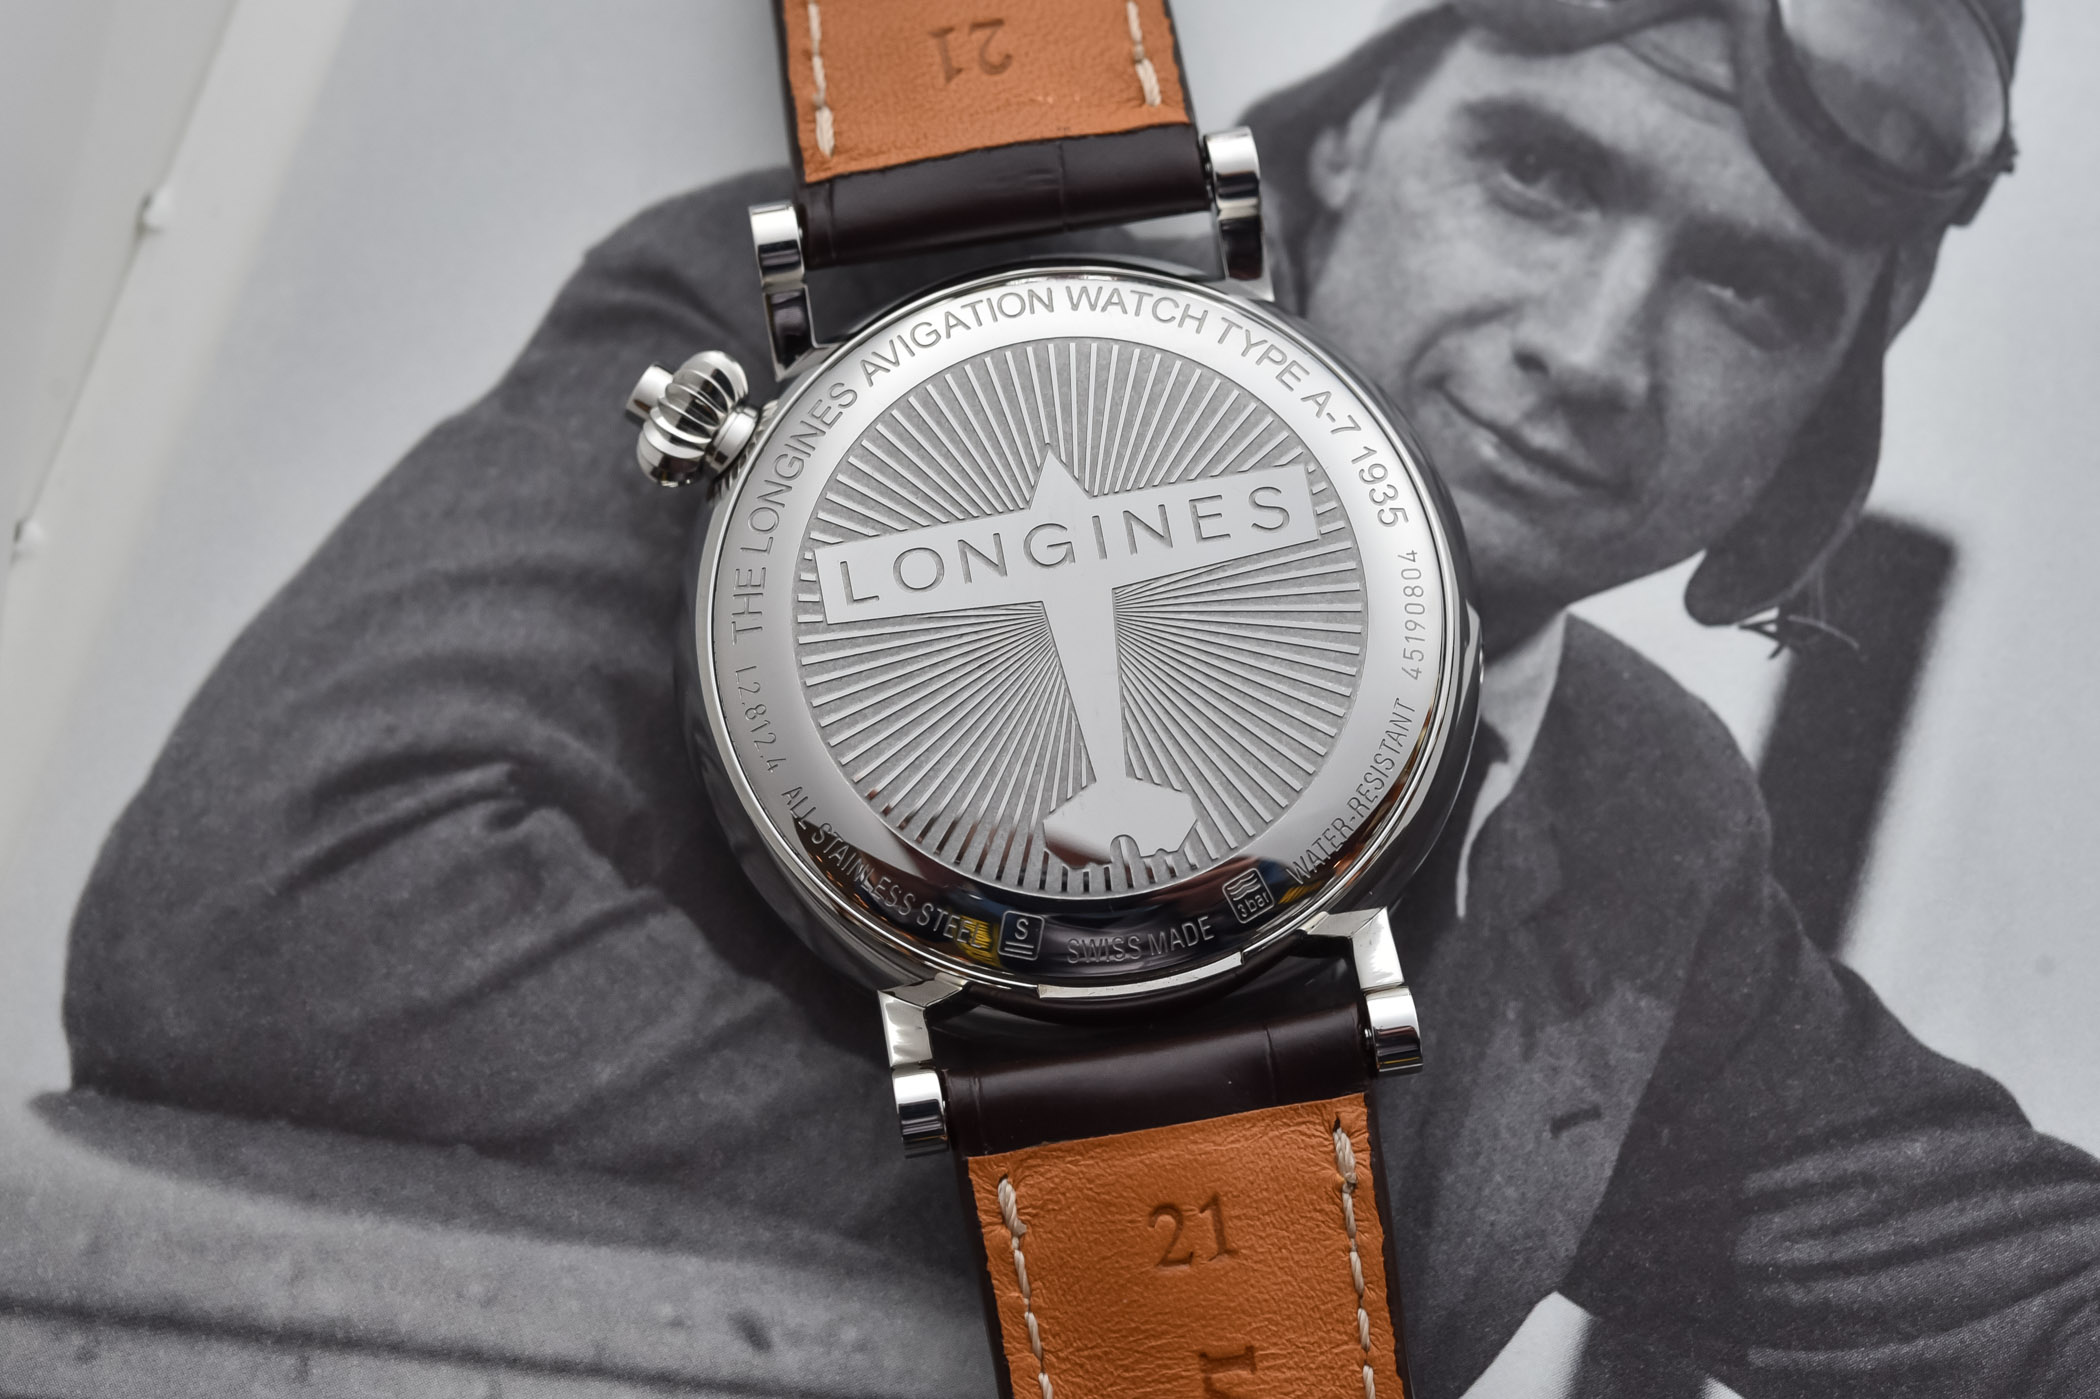 Longines Avigation Watch Type A-7 1935 - 2020 Edition Black Dial